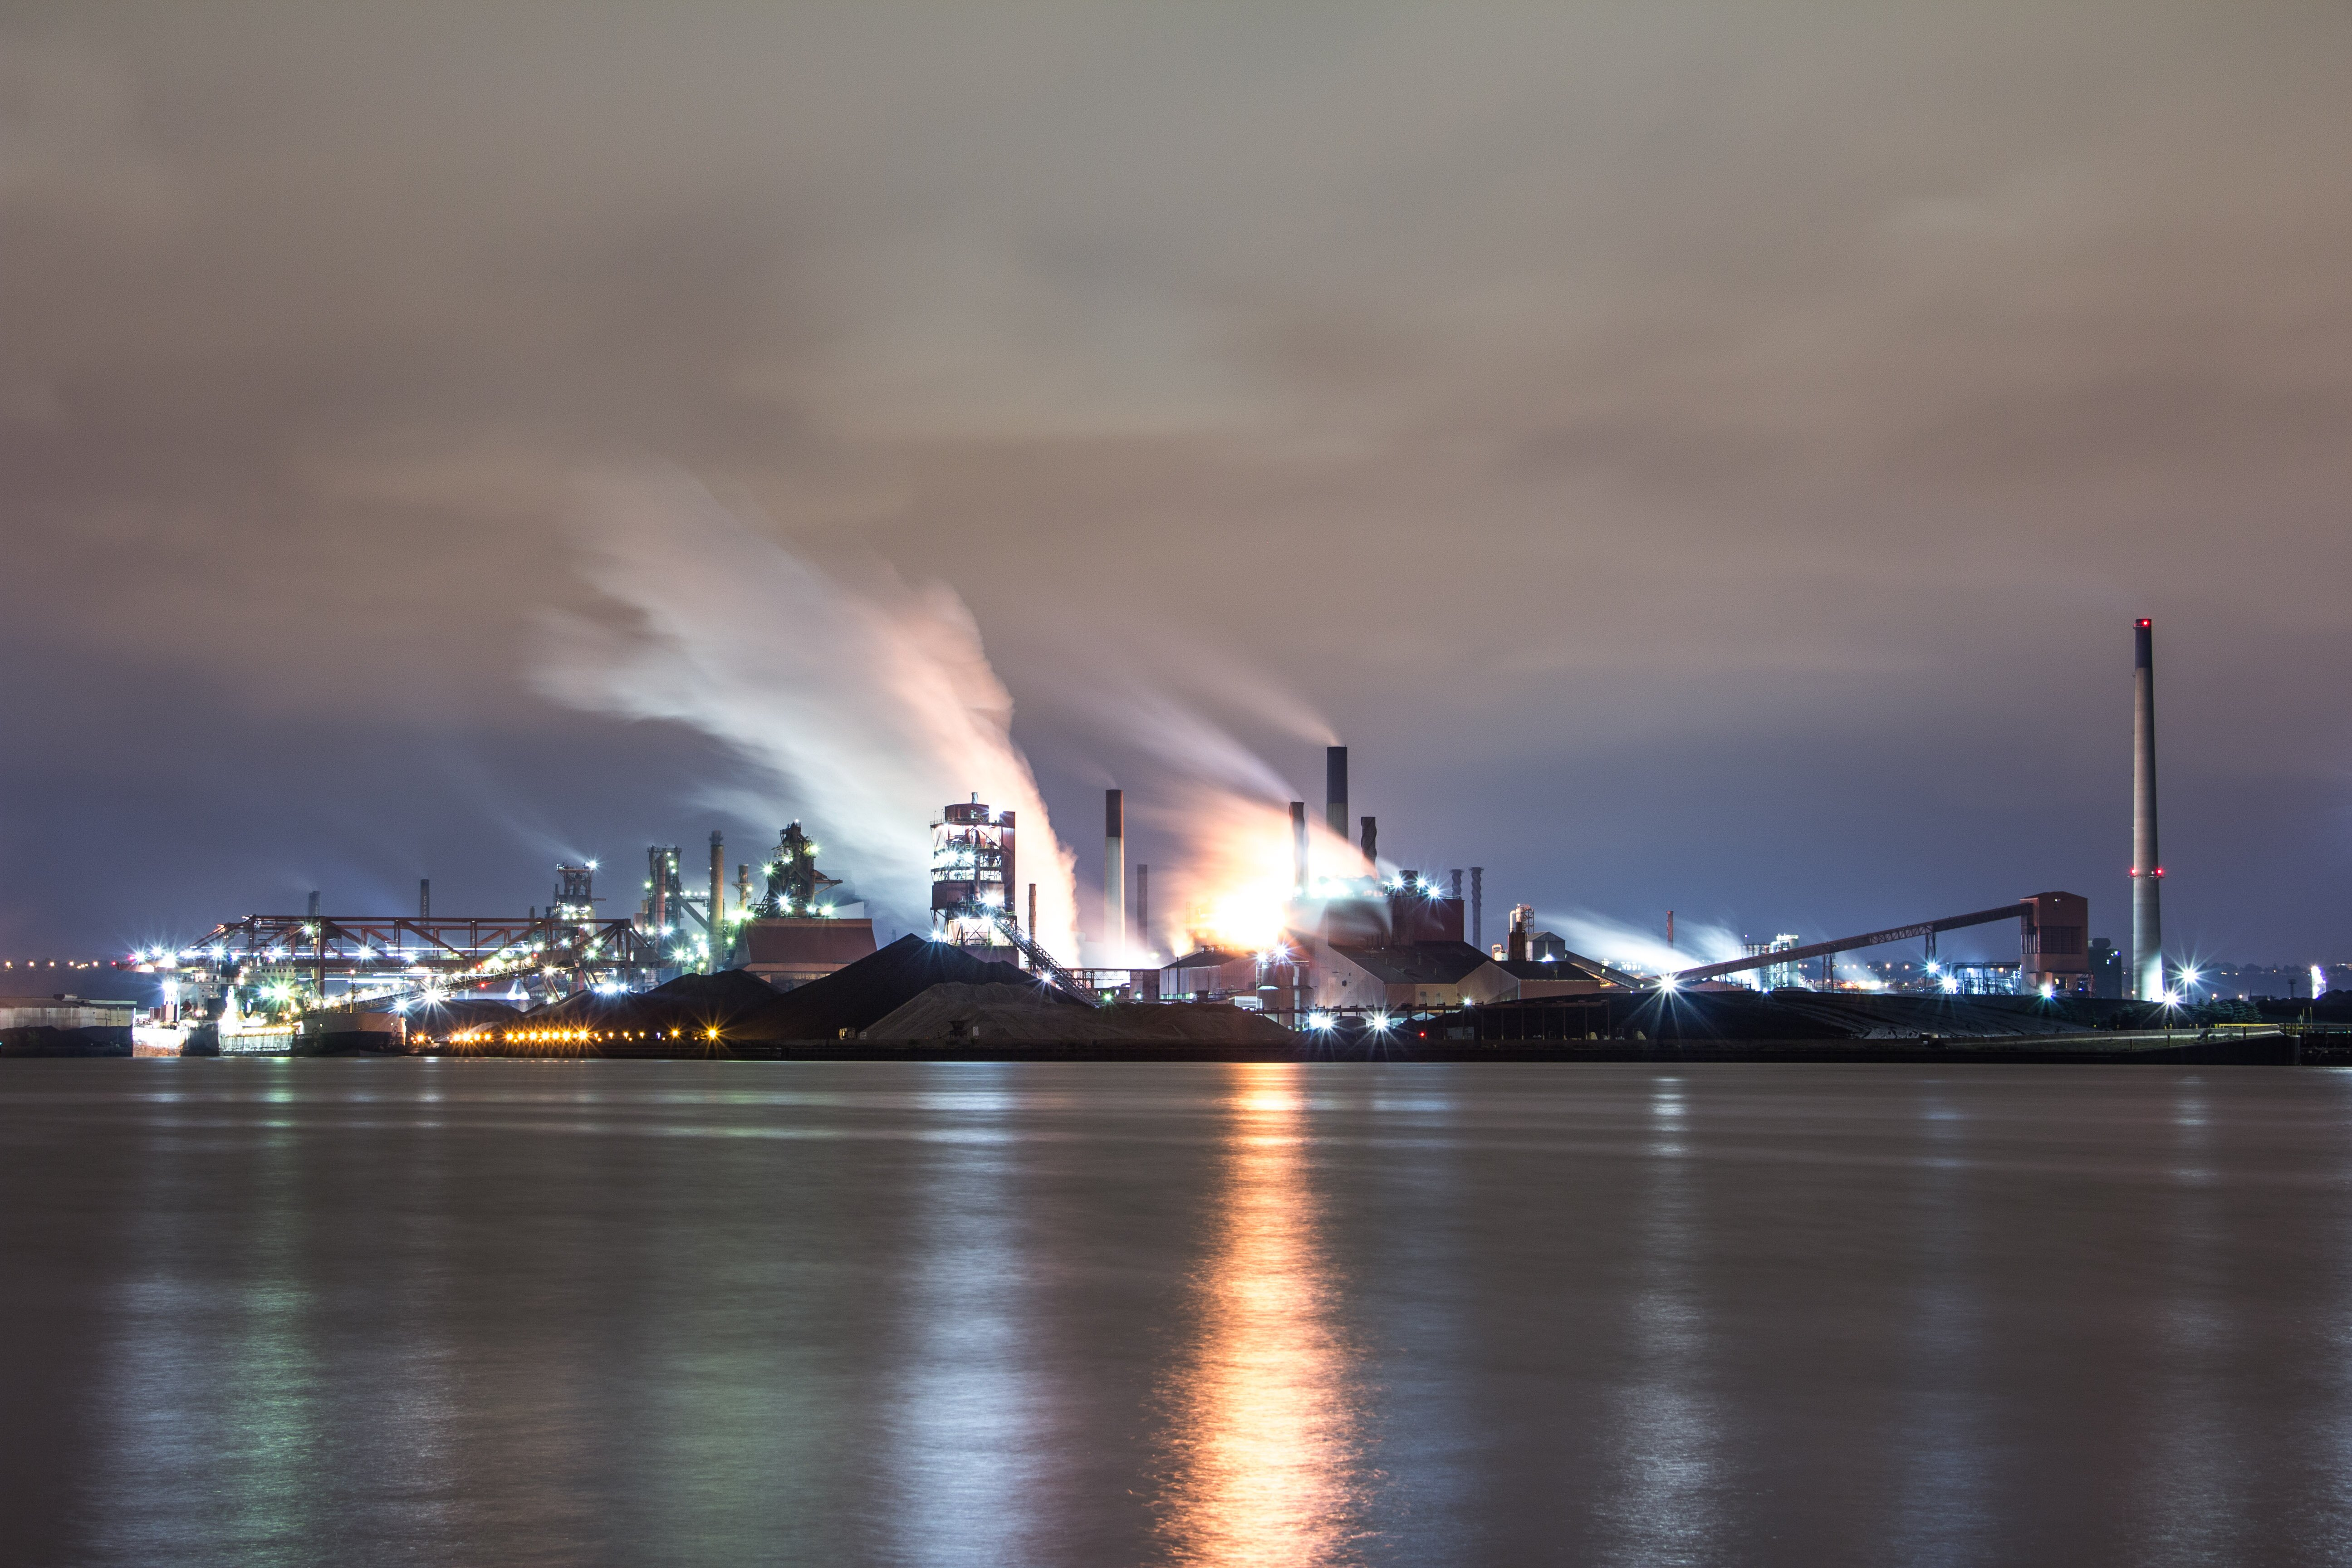 Dofasco south from eastport drive. Copyright EricO'Reilly